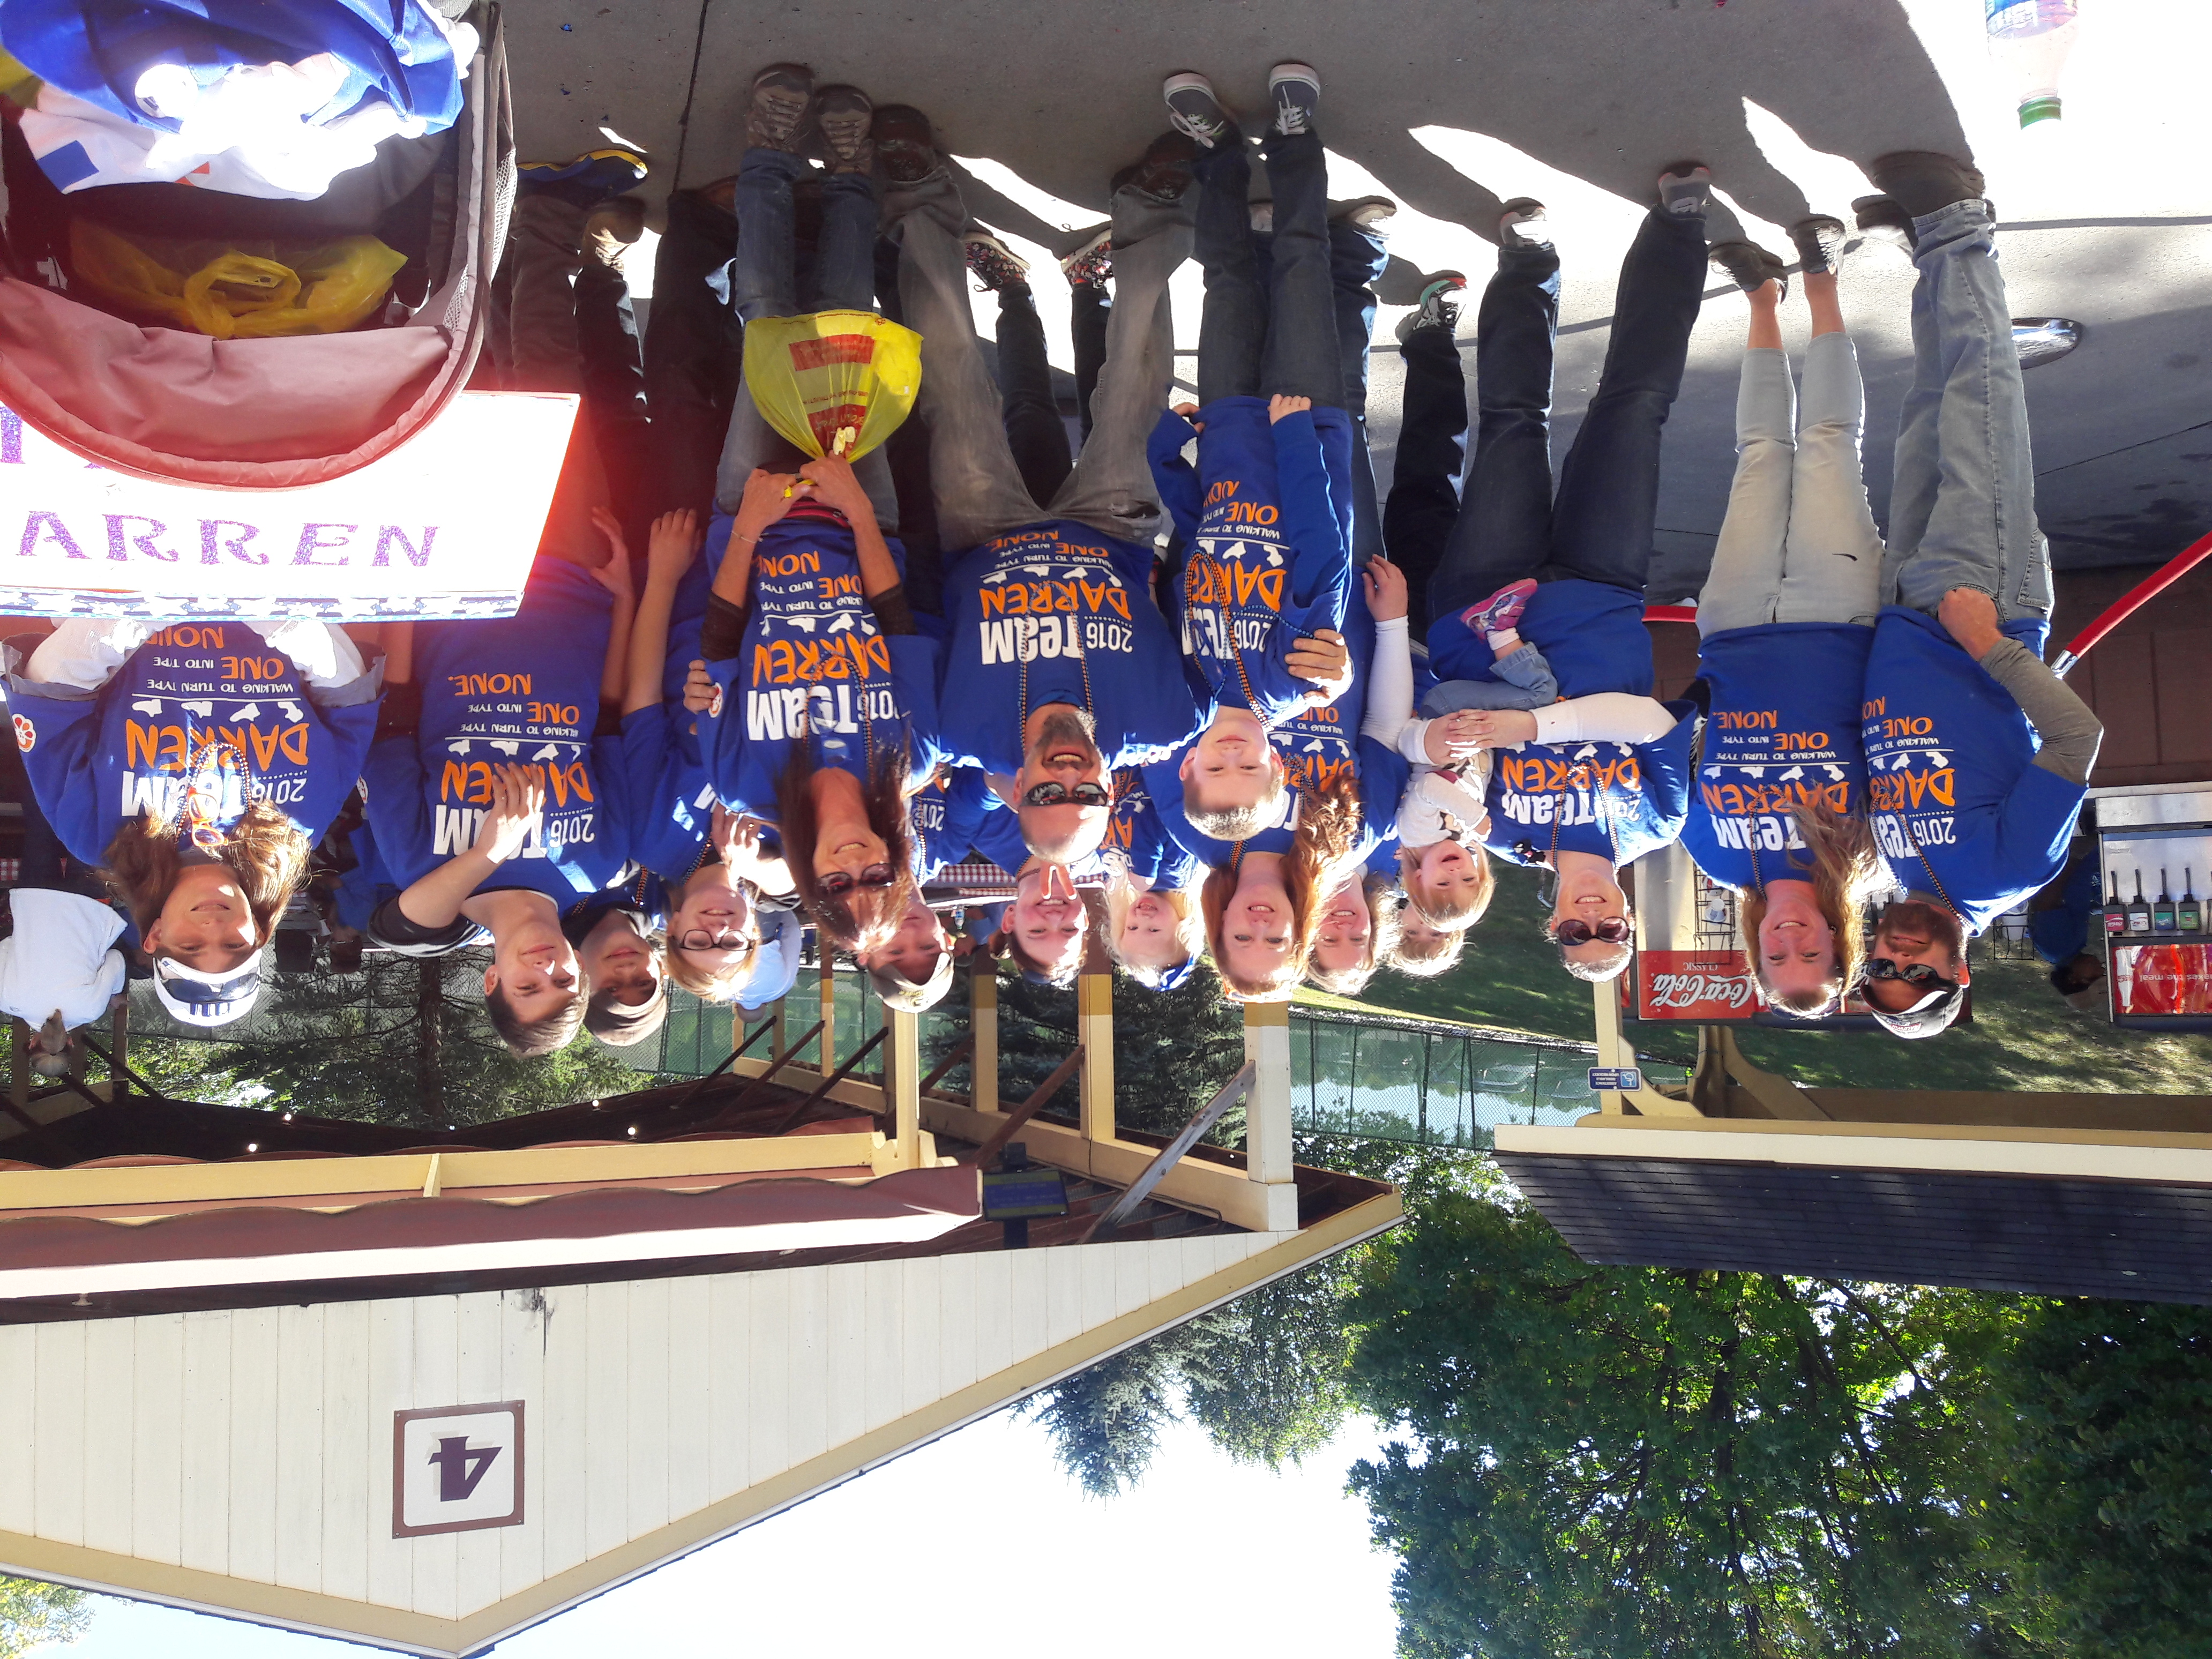 Custom T Shirts For Team Darren At The Jdrf One Walk 2016